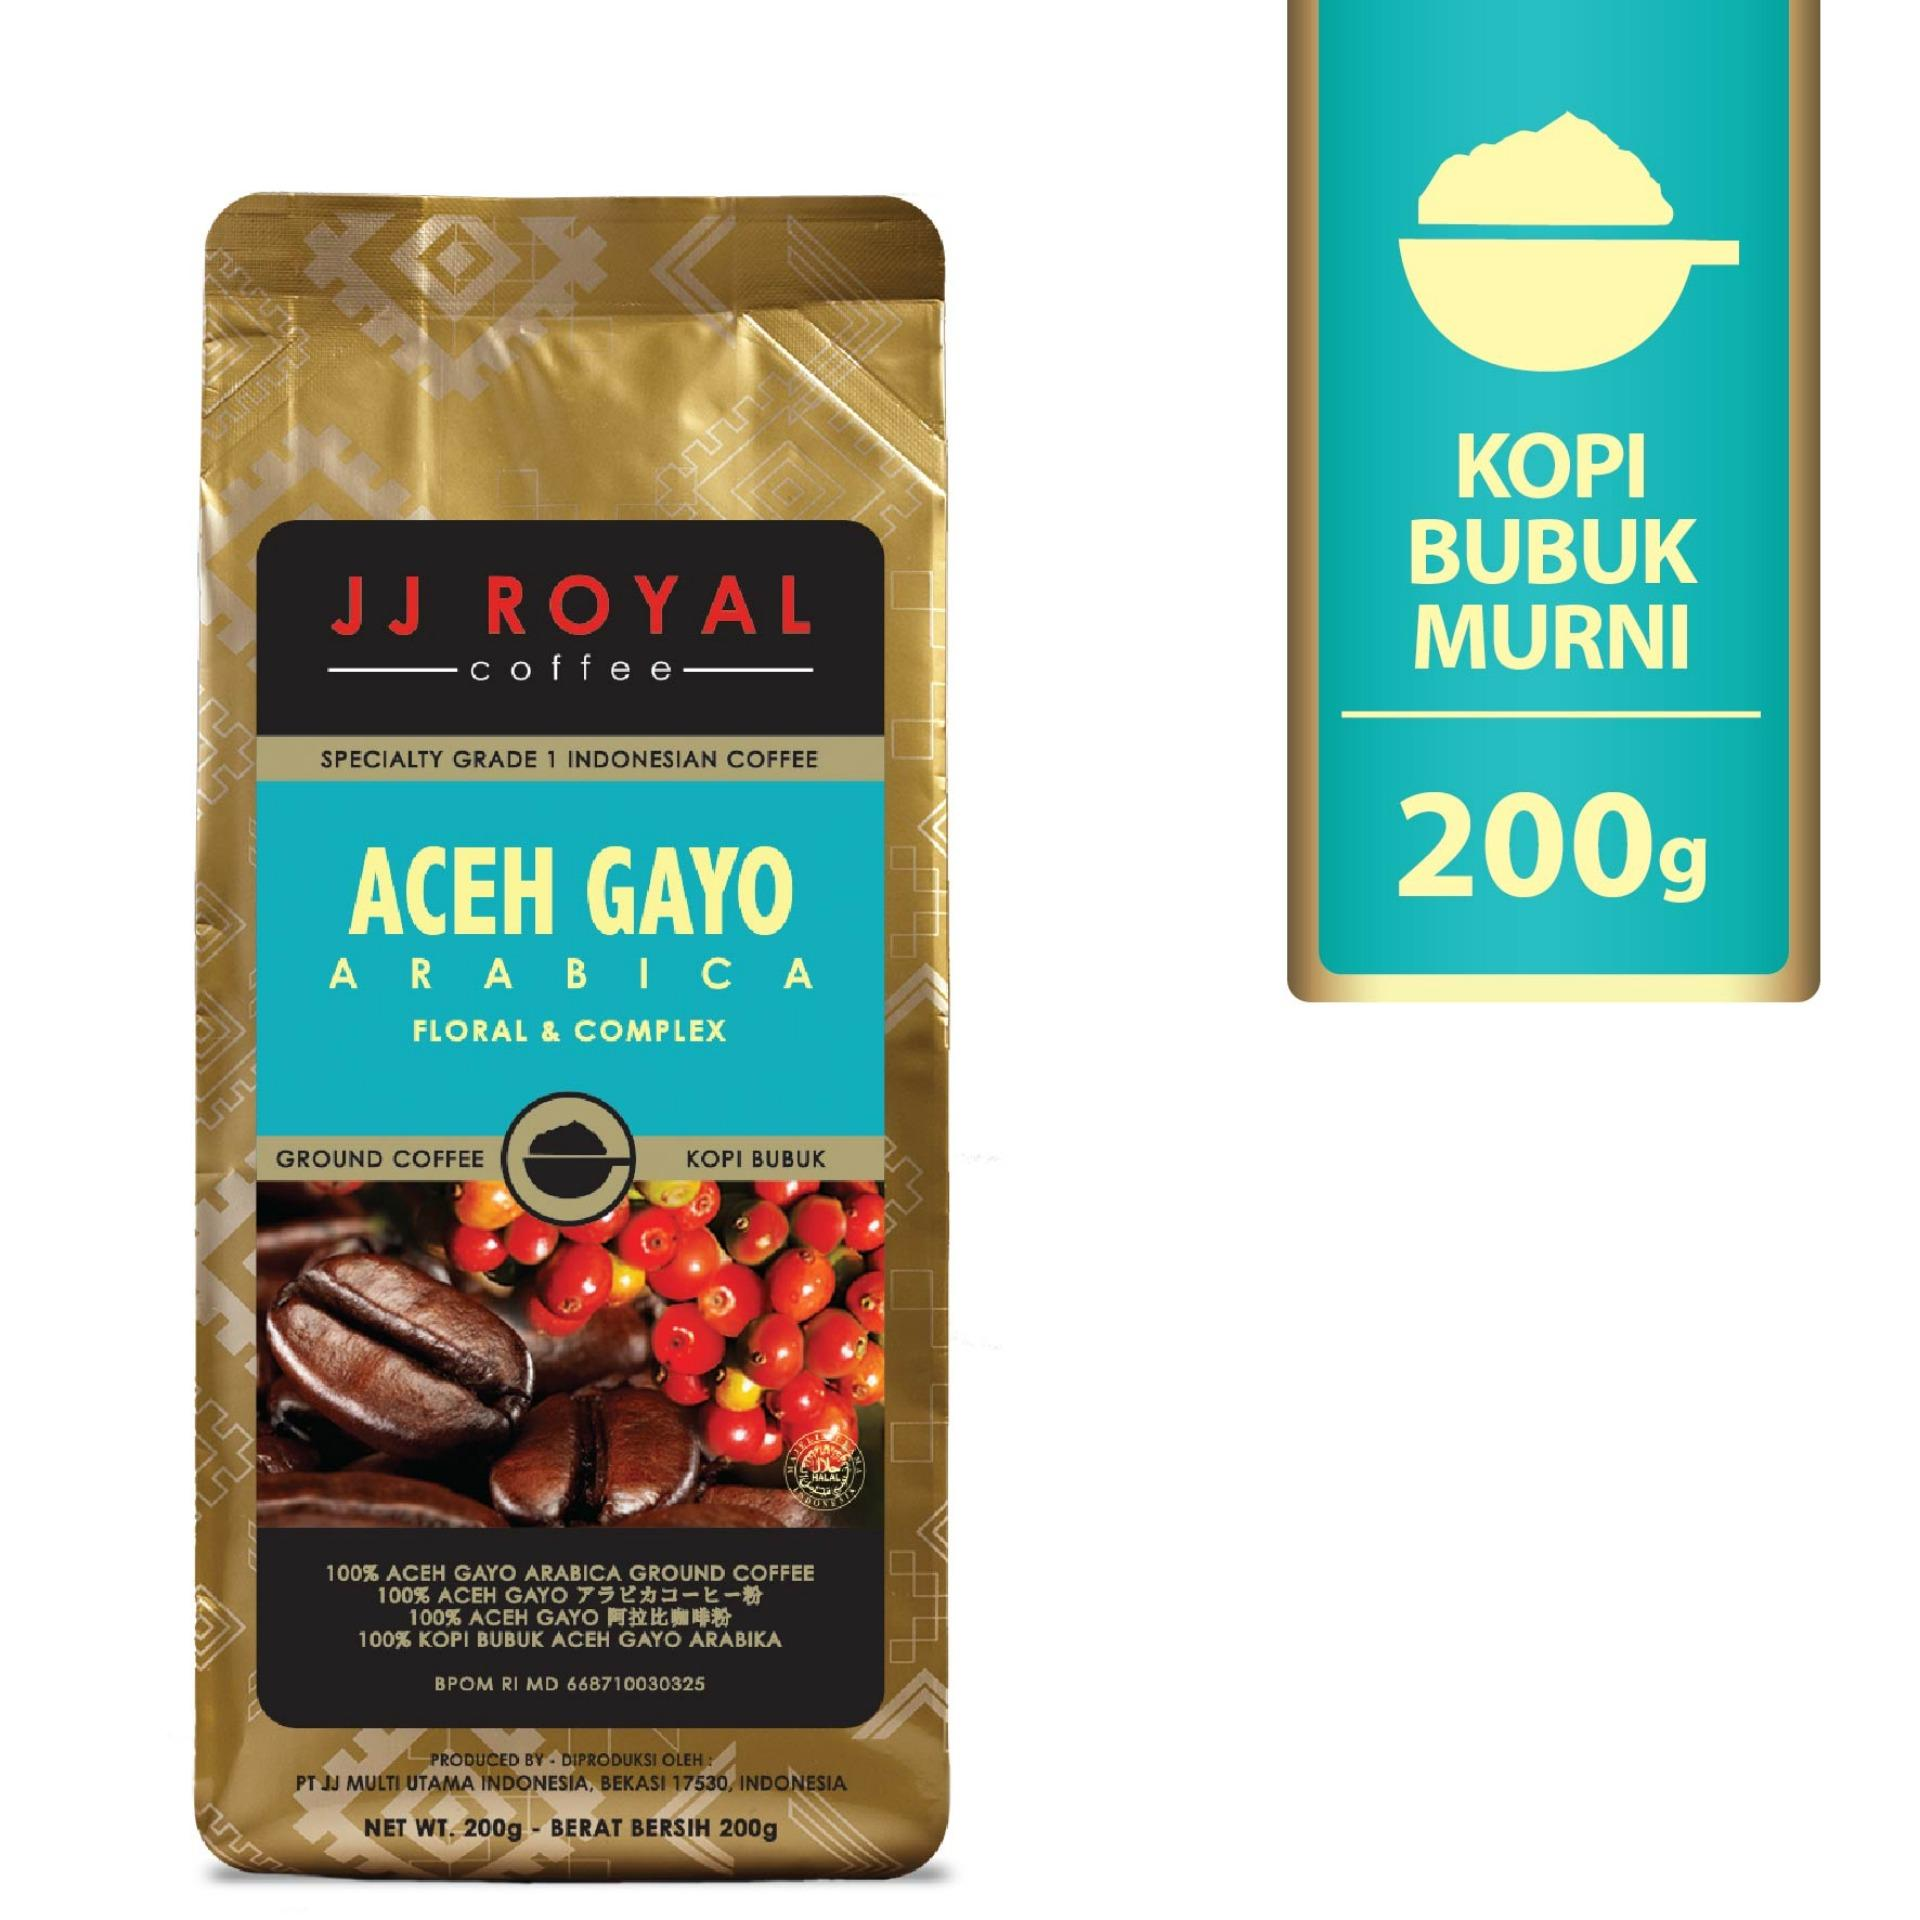 Jual Jj Royal Coffee Aceh Gayo Arabica Ground Kopi Bubuk 200Gr Branded Original